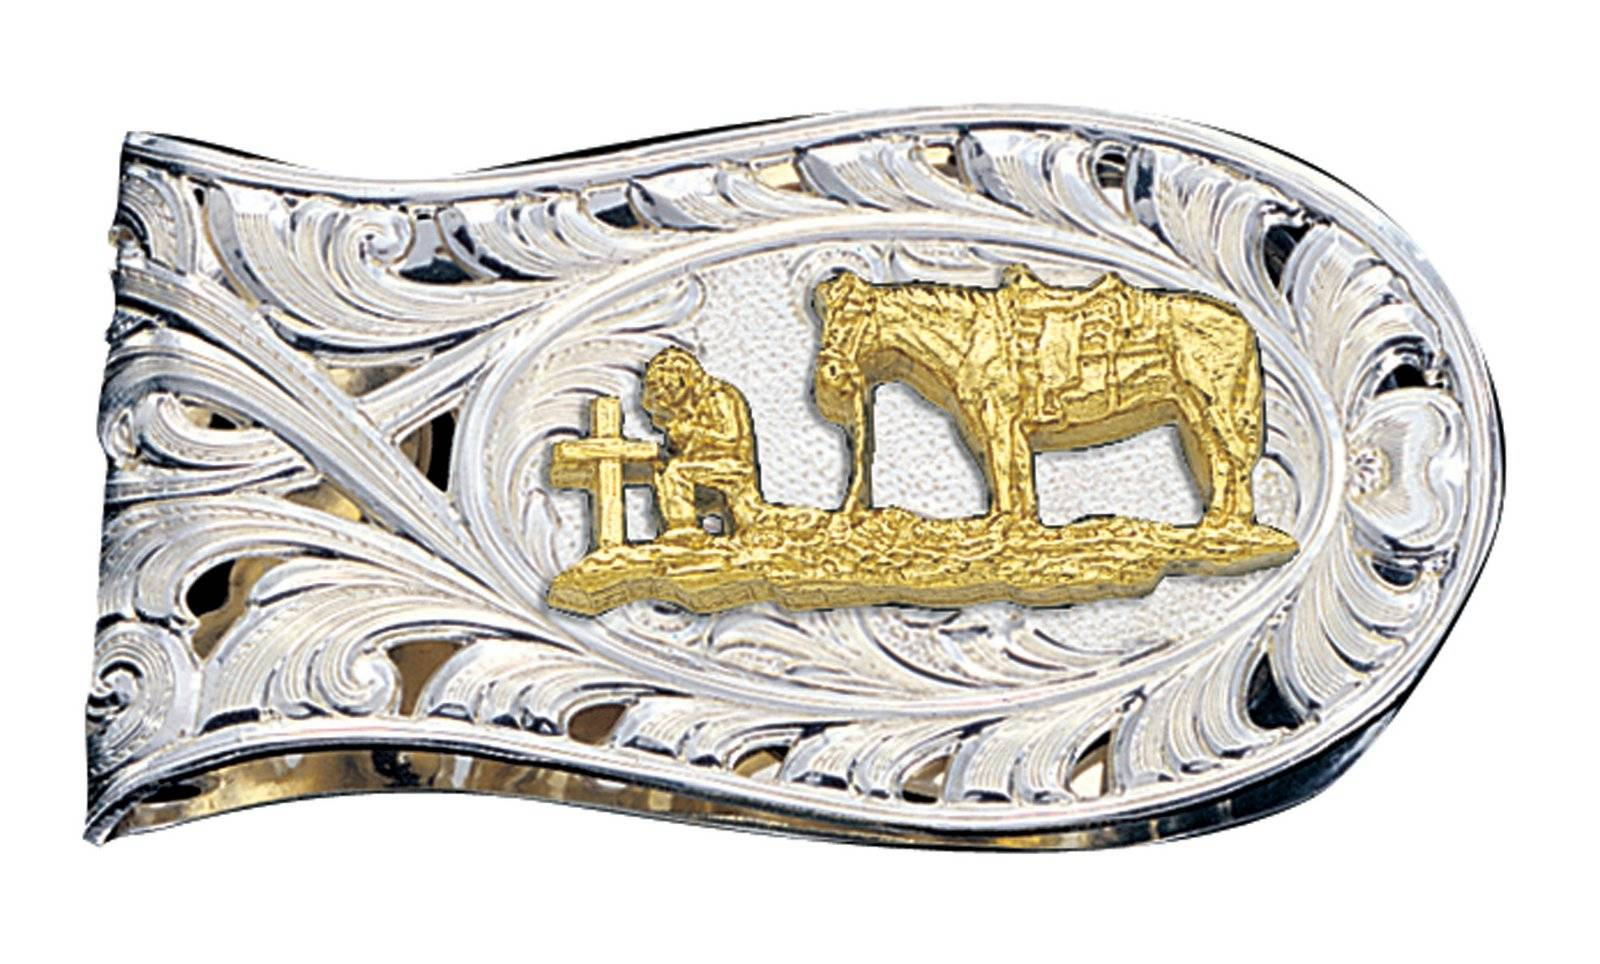 Montana Silversmiths Christian Cowboy Cut Filigree Money Clip